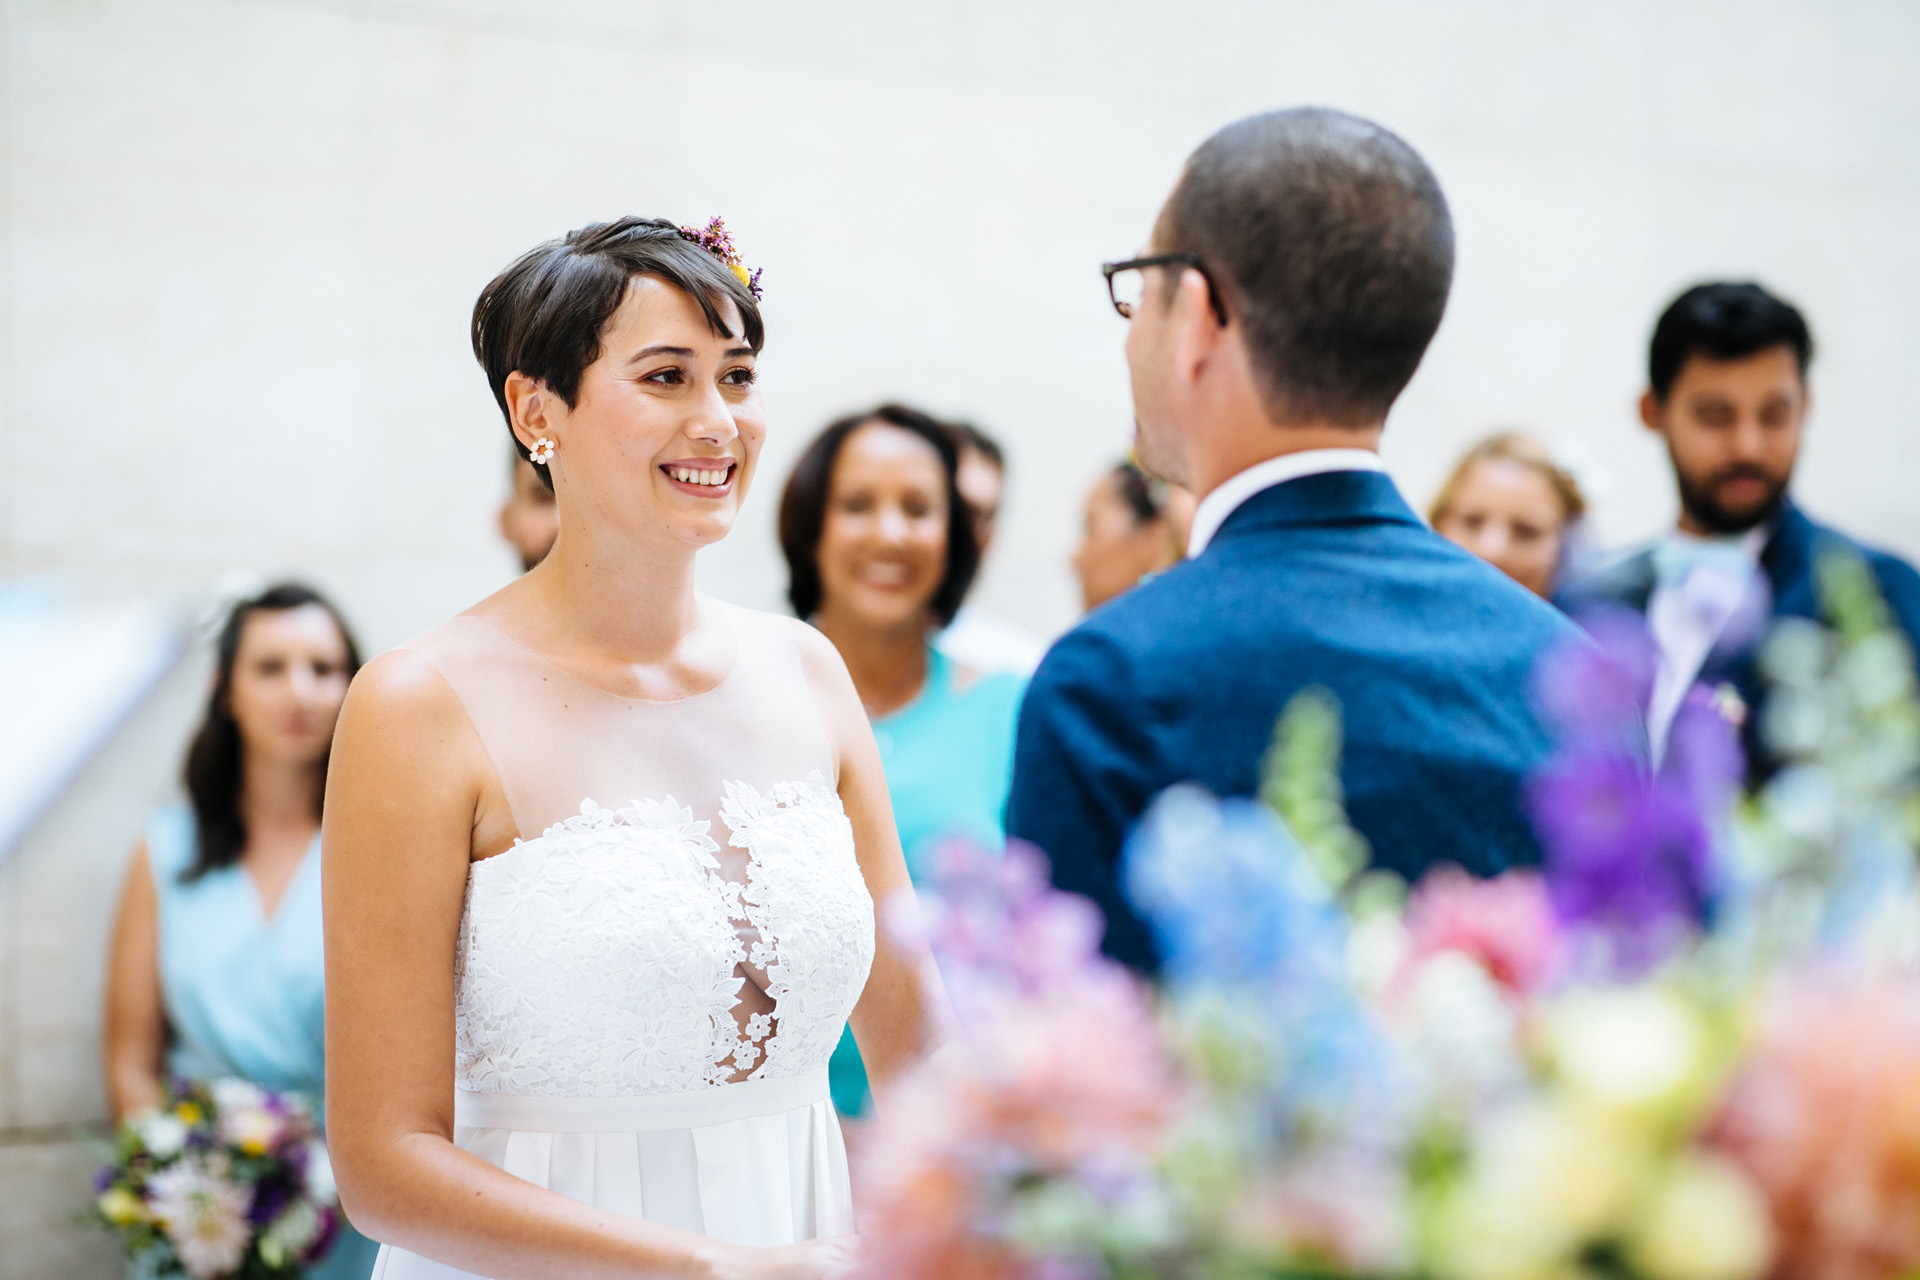 bride and groom smiling during wedding ceremony at Hammersmith town hall